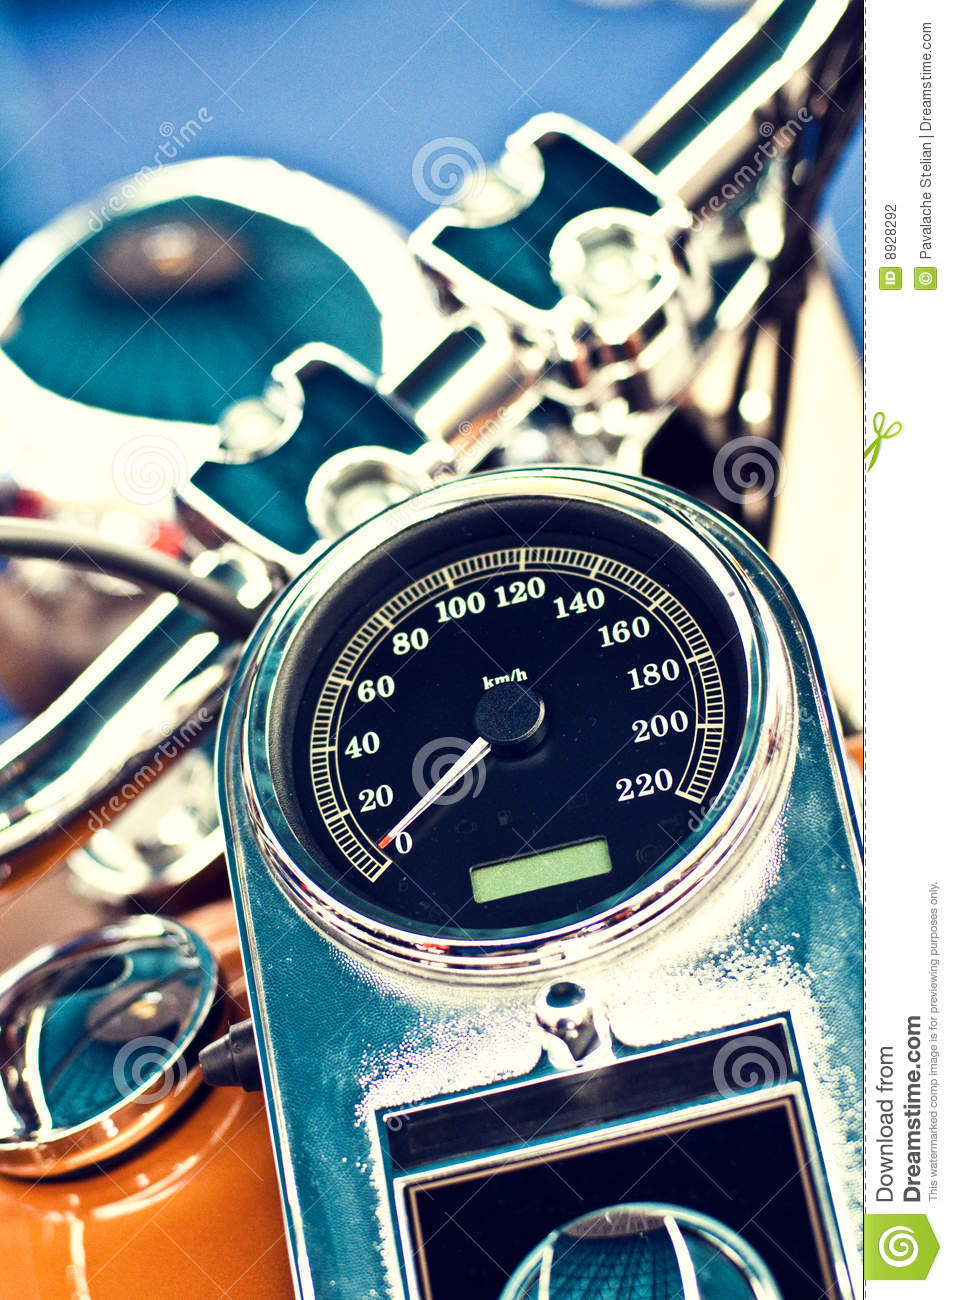 Gbody additionally Tr Pedistal also Boot Amazon as well Moto Guzzi Cafe Racer as well Maxresdefault. on fuel gauge time